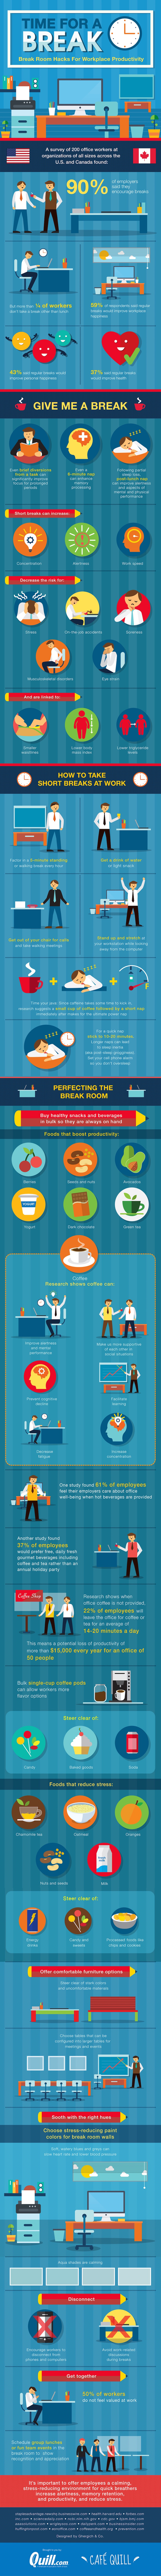 Stock Your Break Room for Better Productivity (Infographic)